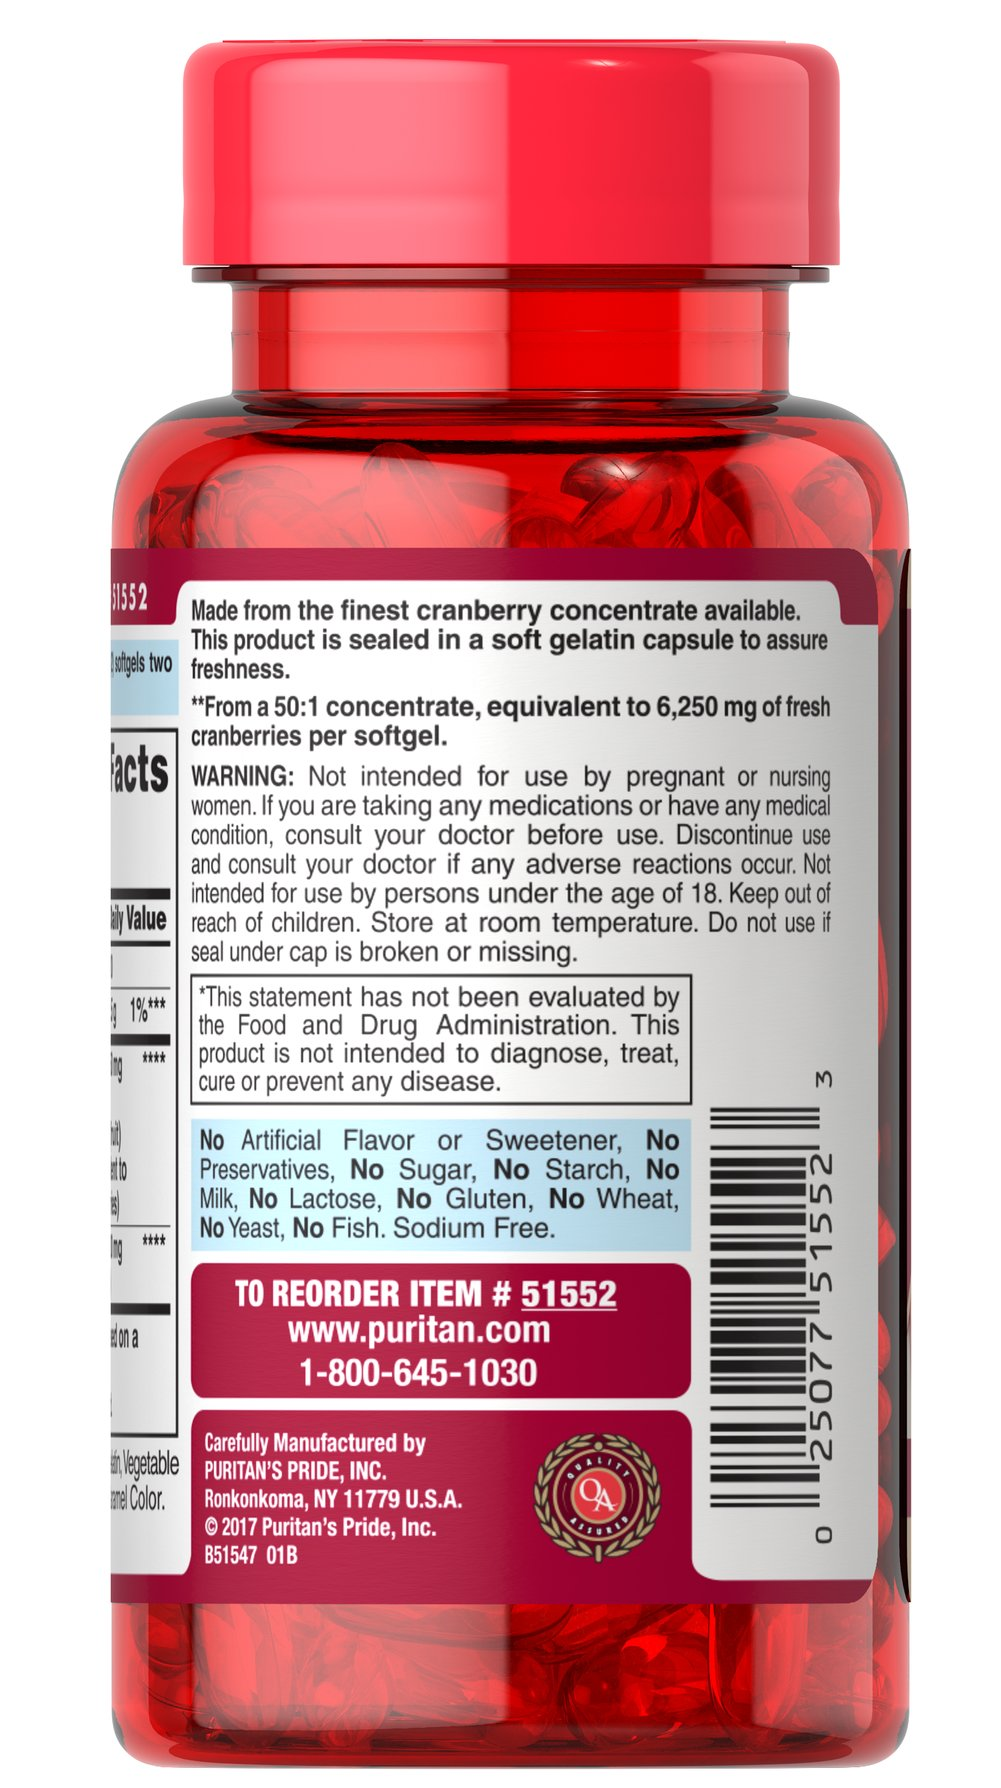 Cranberry Fruit Concentrate Plus Hibiscus Extract 6250 mg / 50 mg Thumbnail Alternate Bottle View